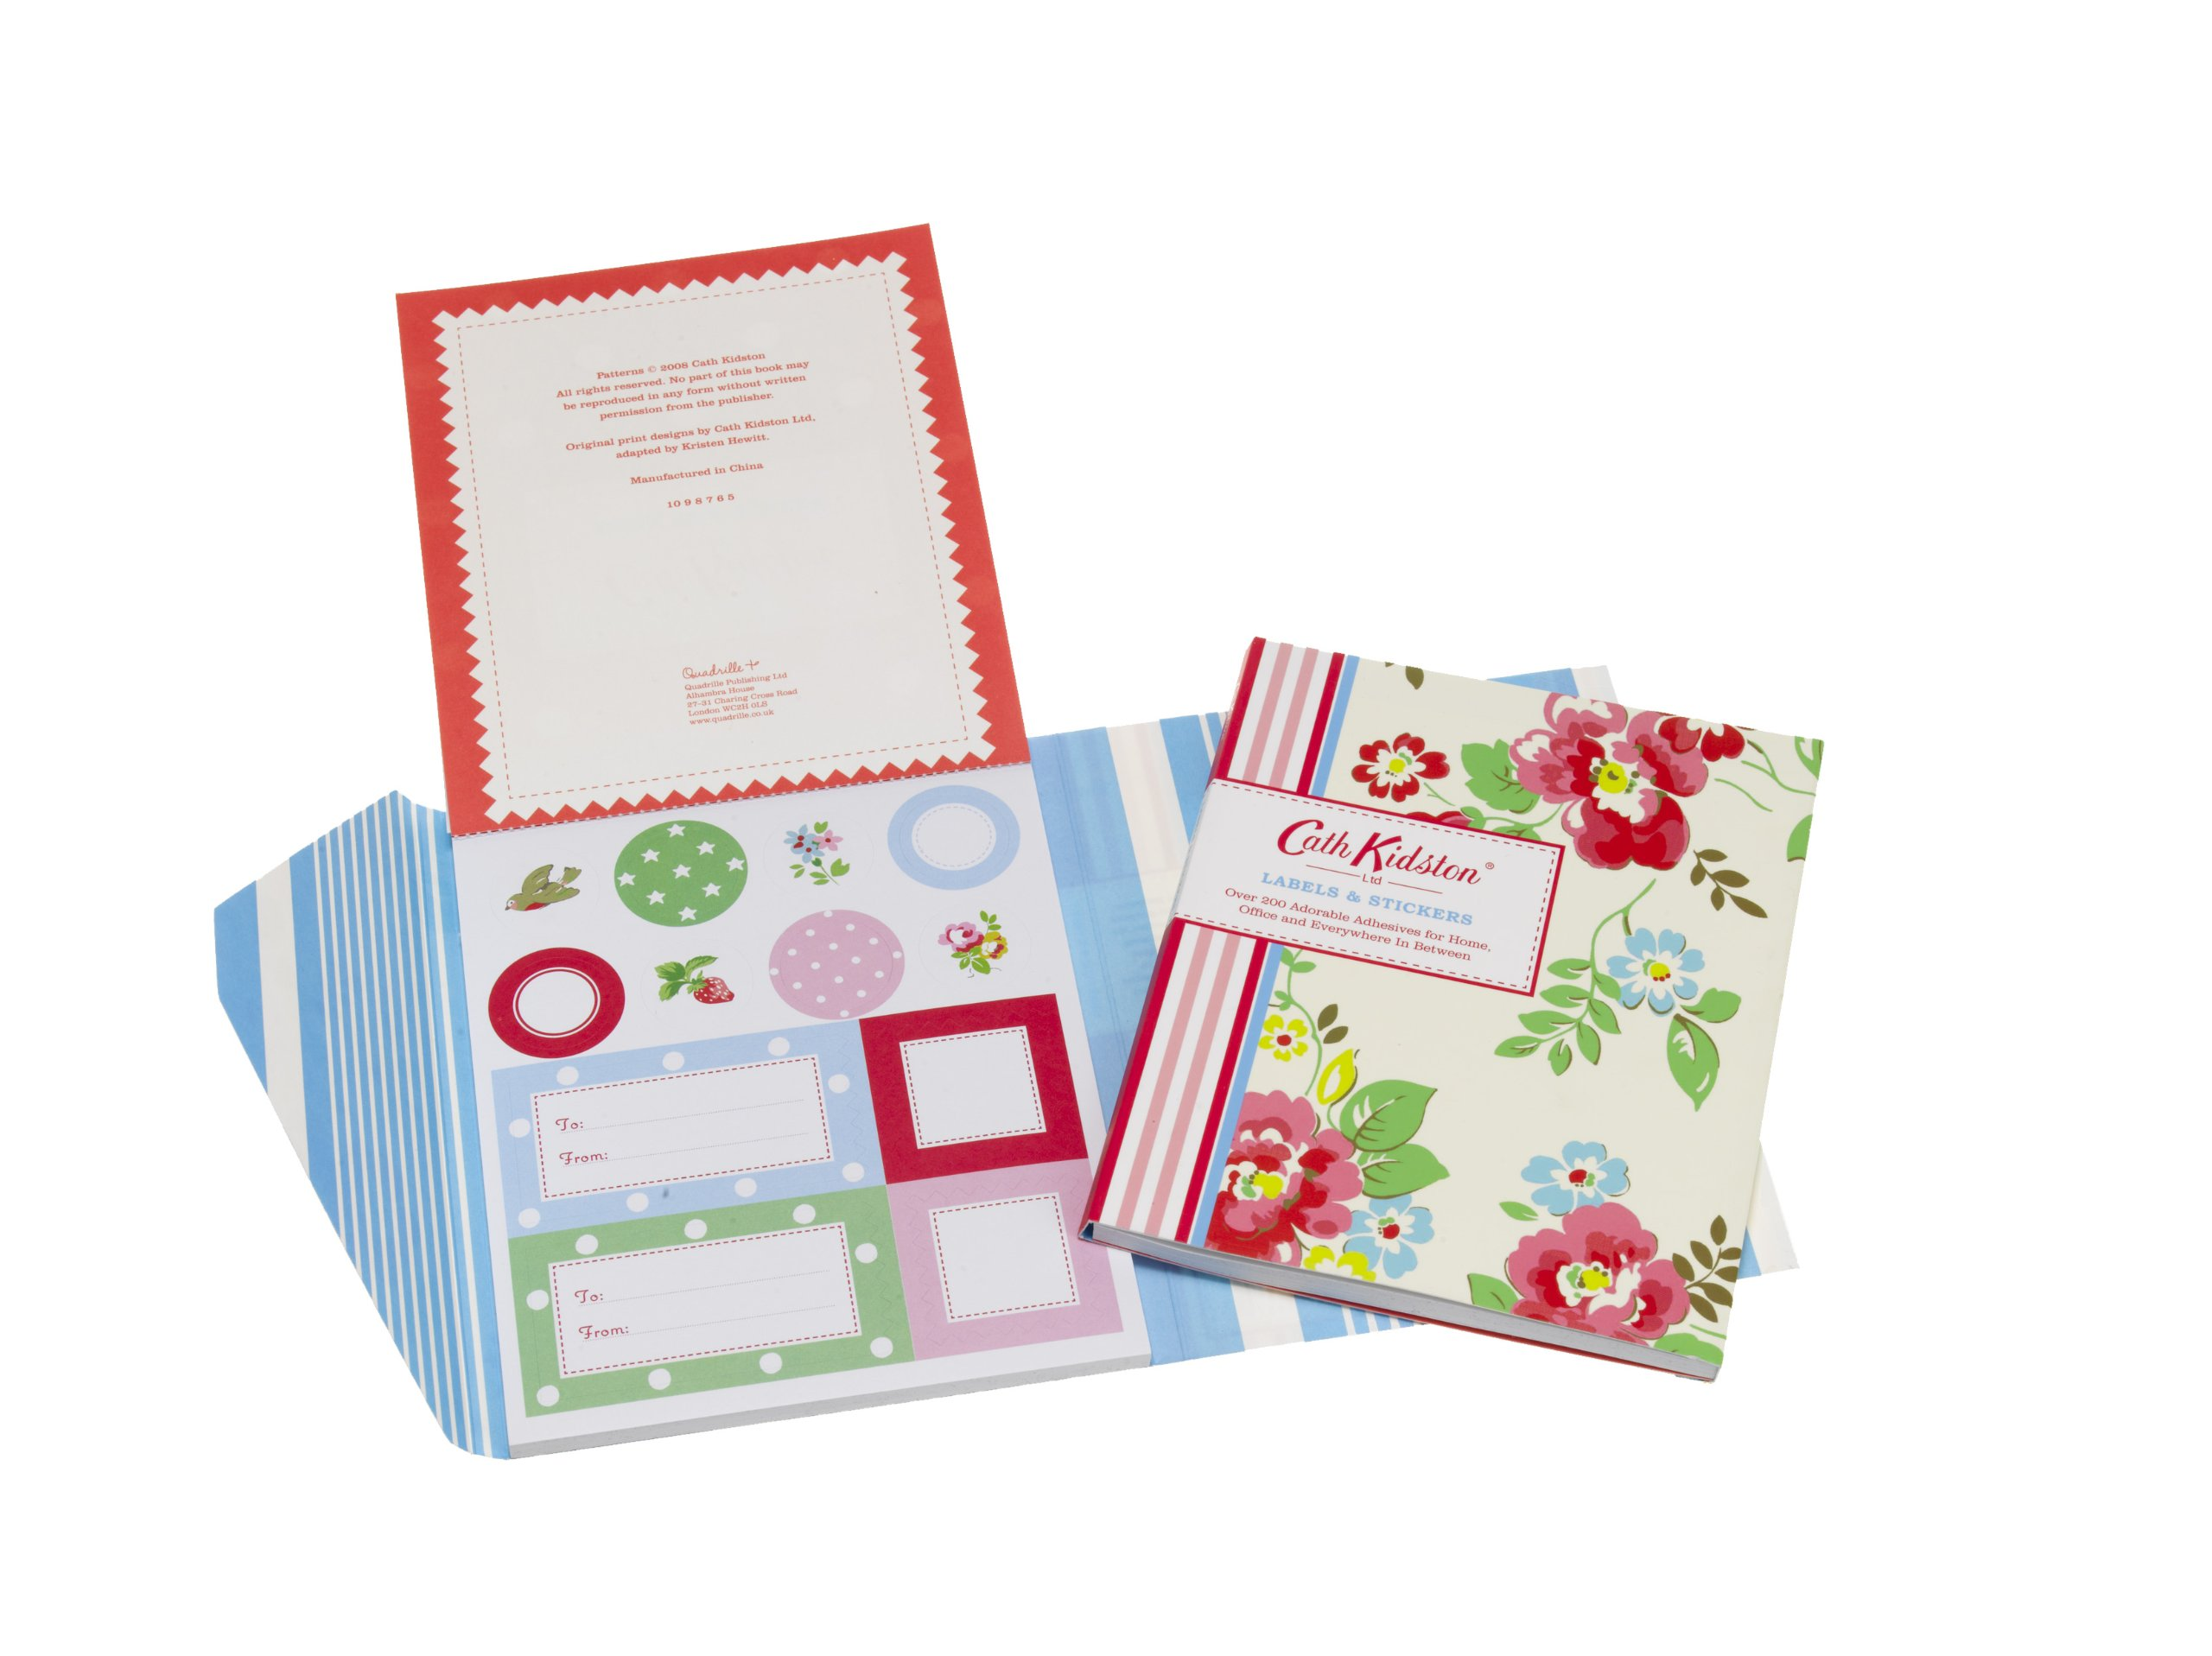 Cath Kidston Labels And Stickers Stationery Amazoncouk Quadrille 9781844006670 Books